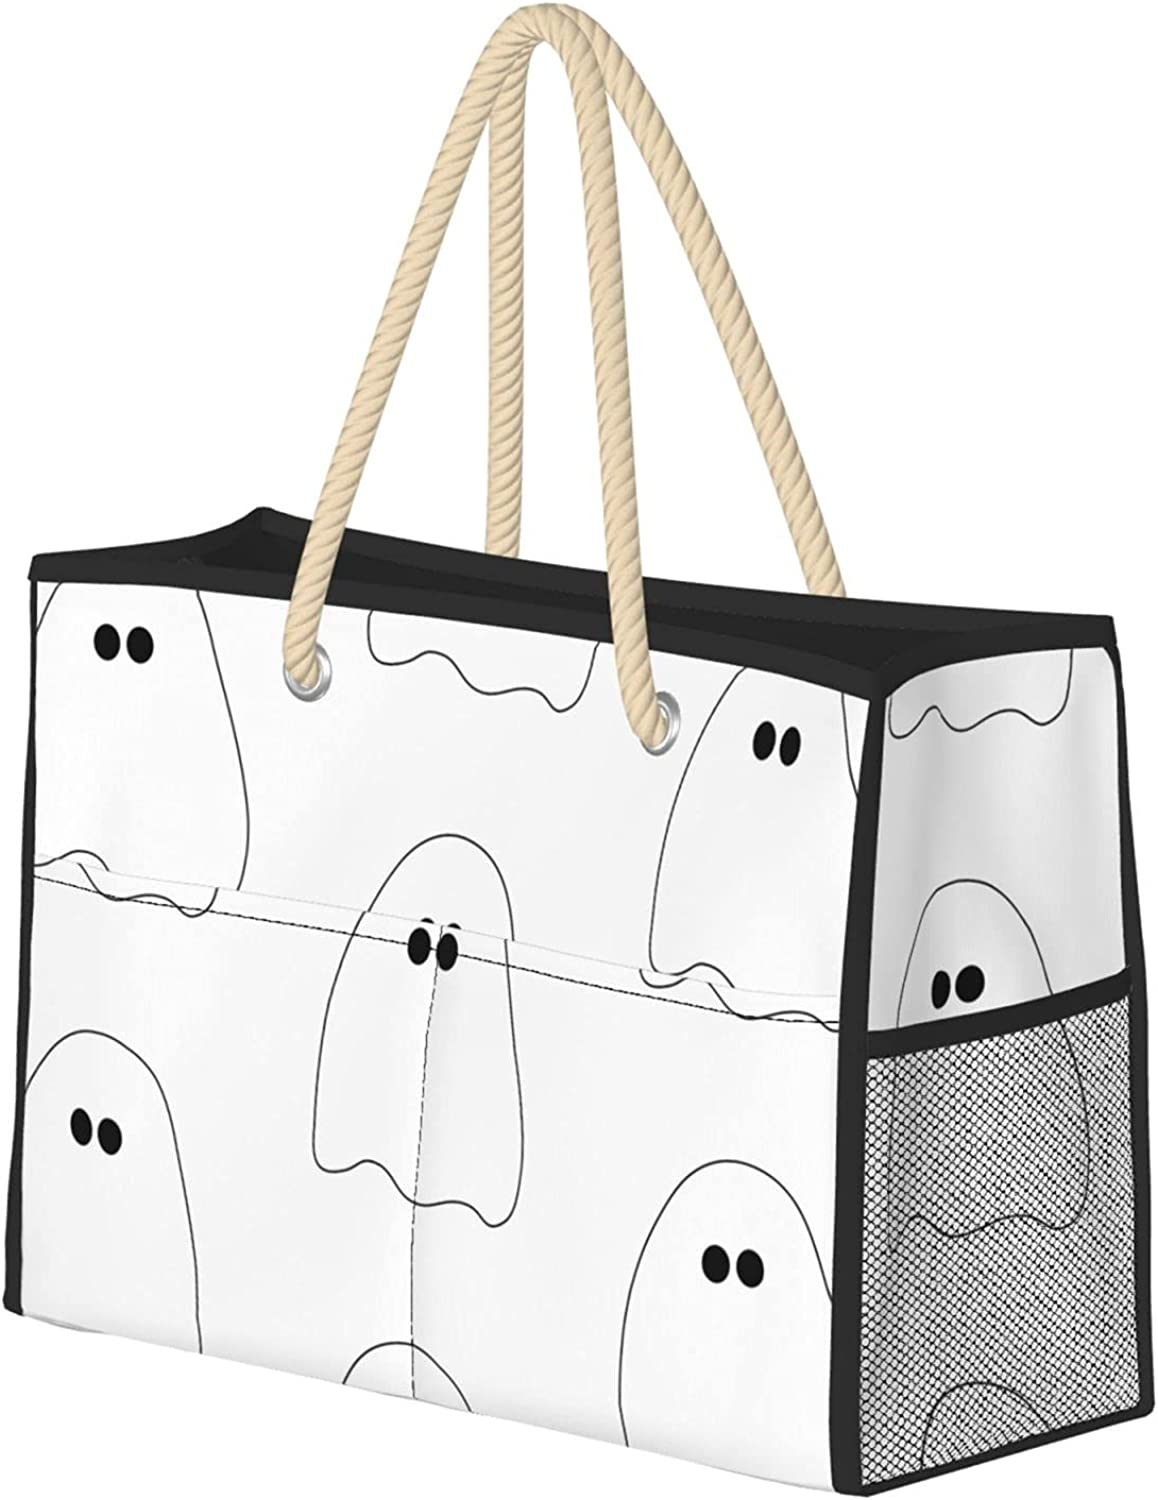 Ghost Beach Bag Tucson Mall Long Mall Extra Large Tote B Foldable Shoulder